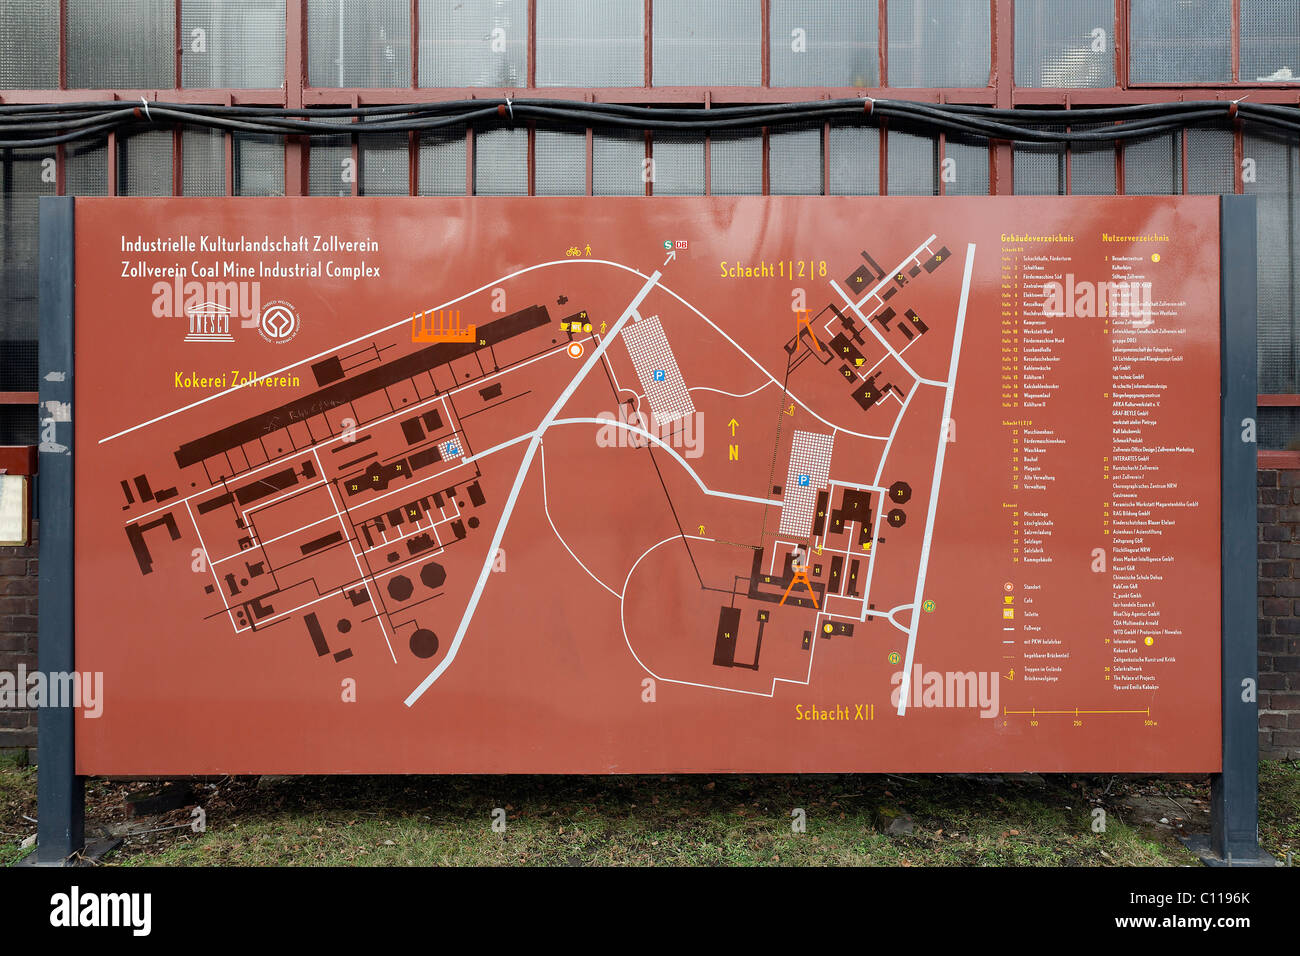 Zollverein Coal Mine Industrial Complex, information board with a site map, Essen-Stoppenberg, Ruhr area, North - Stock Image